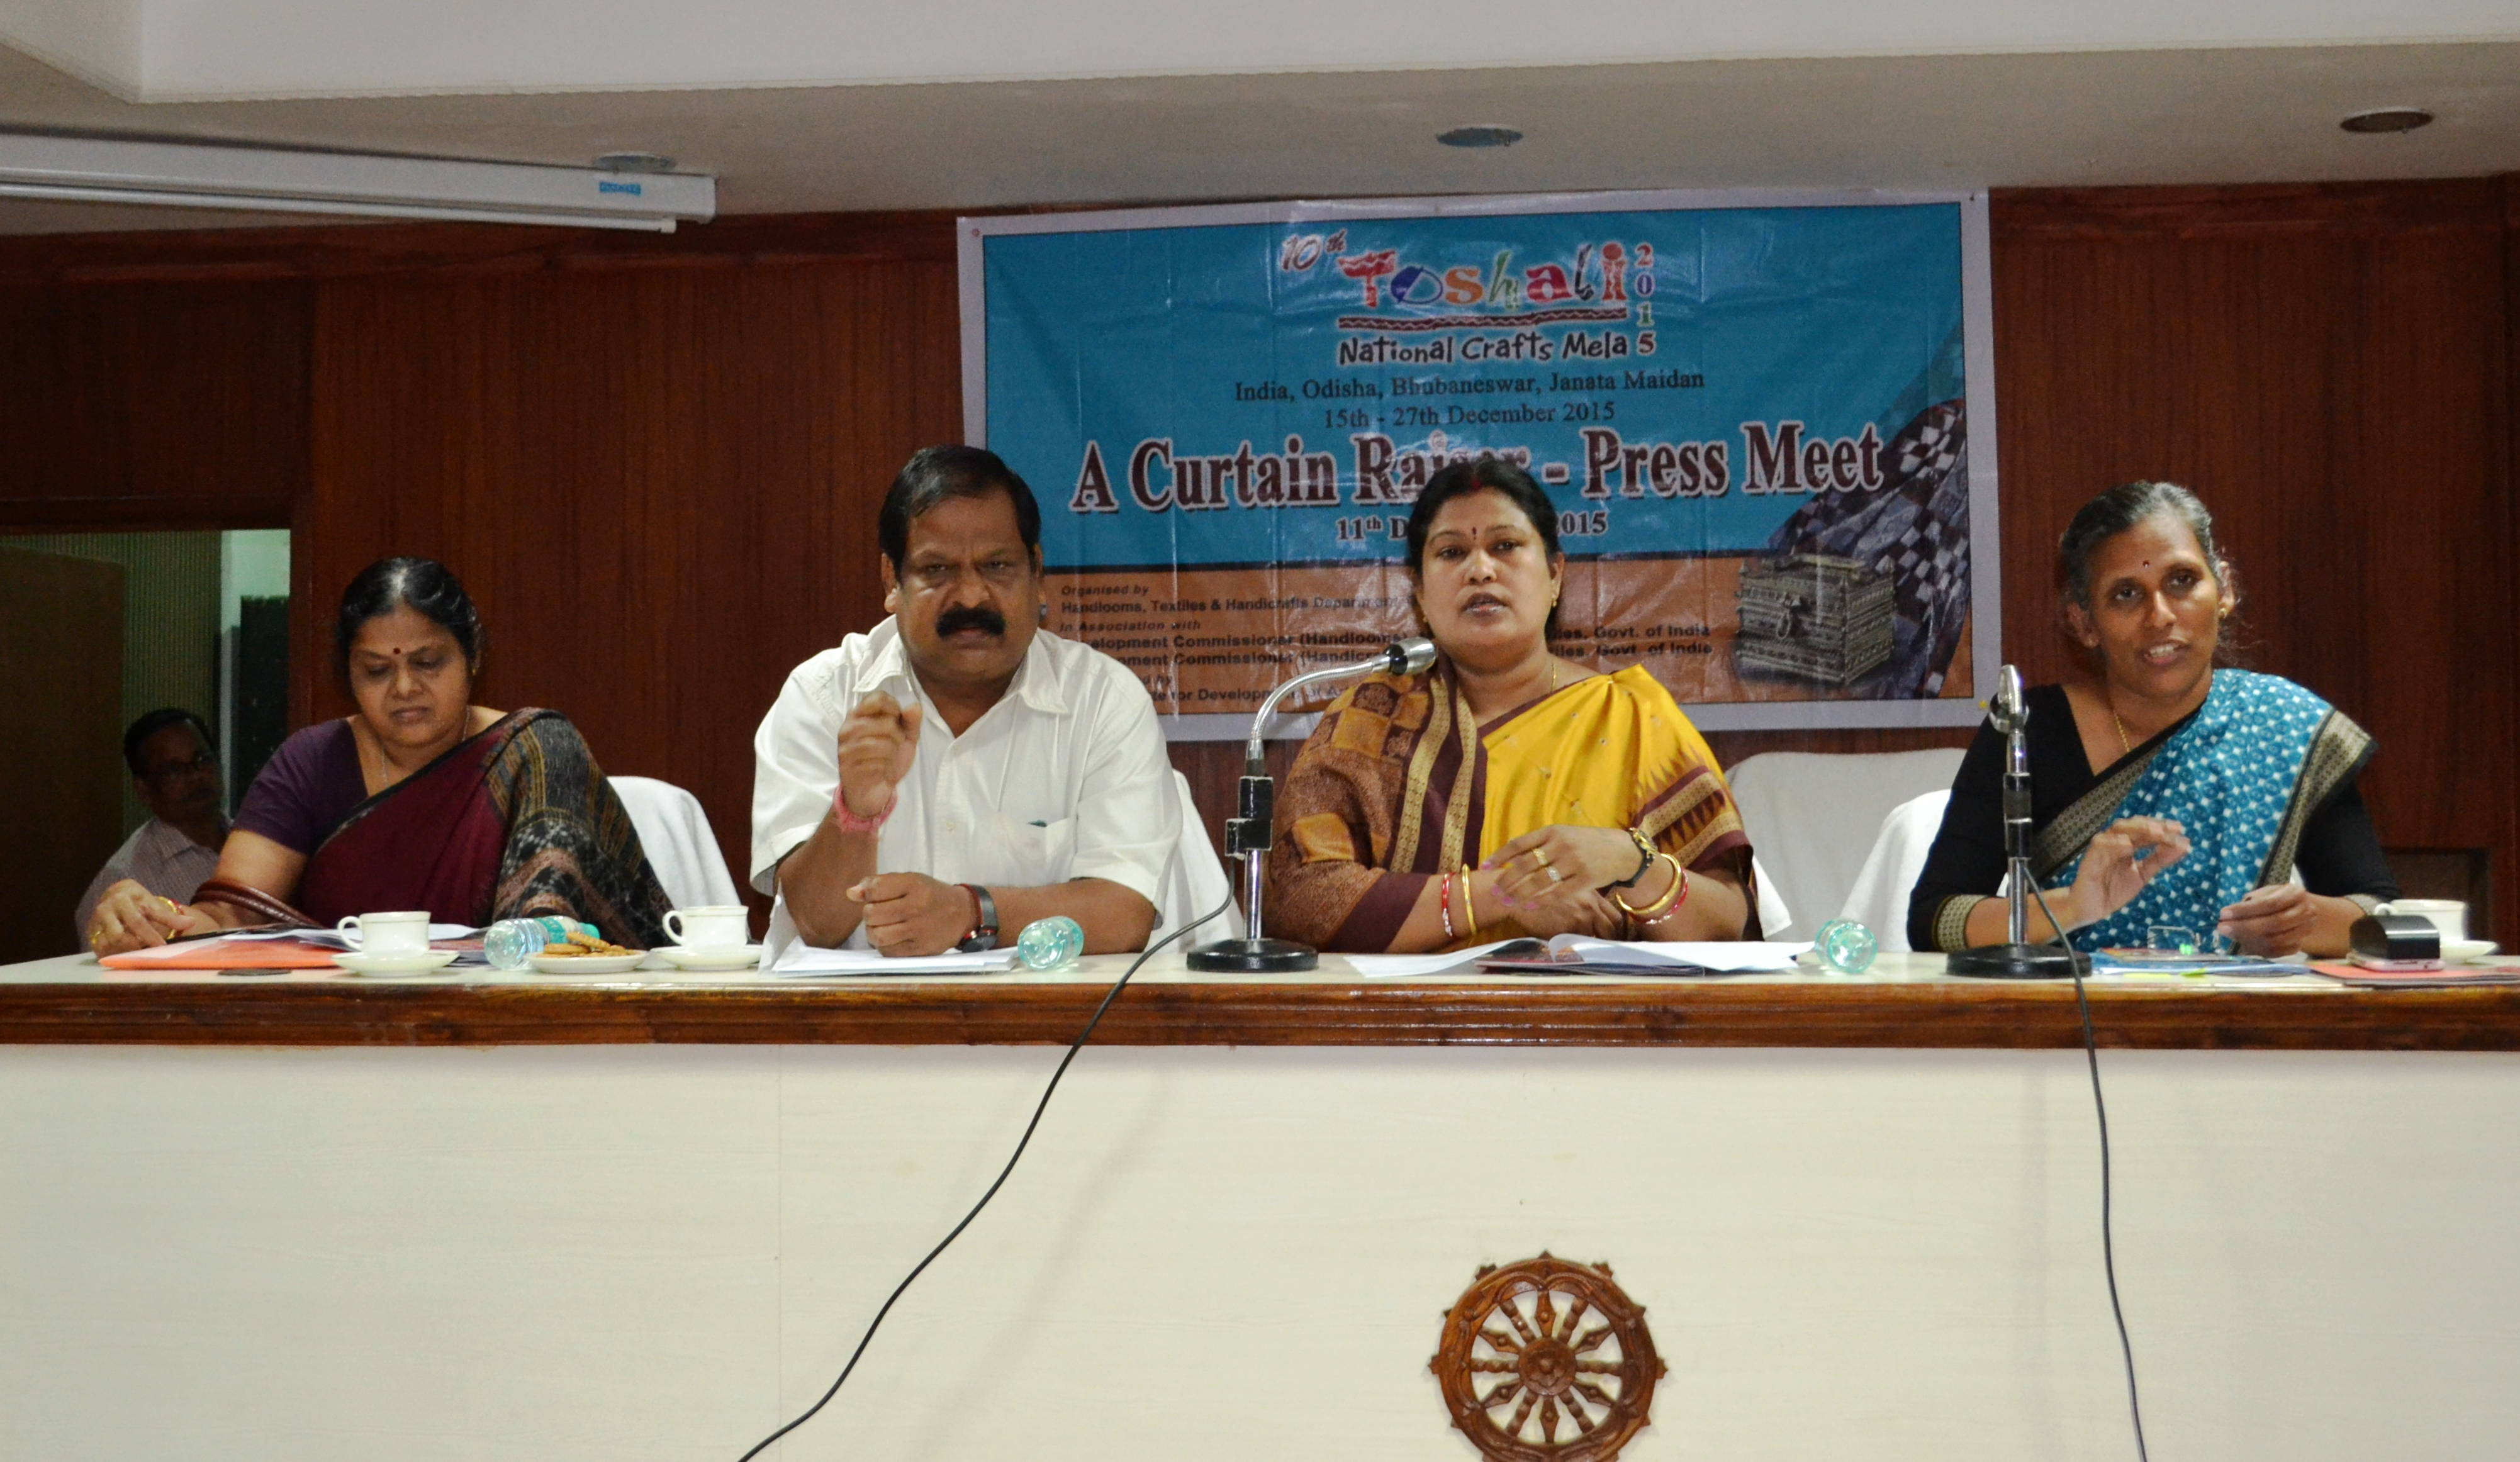 Press meet by Toshali National Crafts Mala 2015